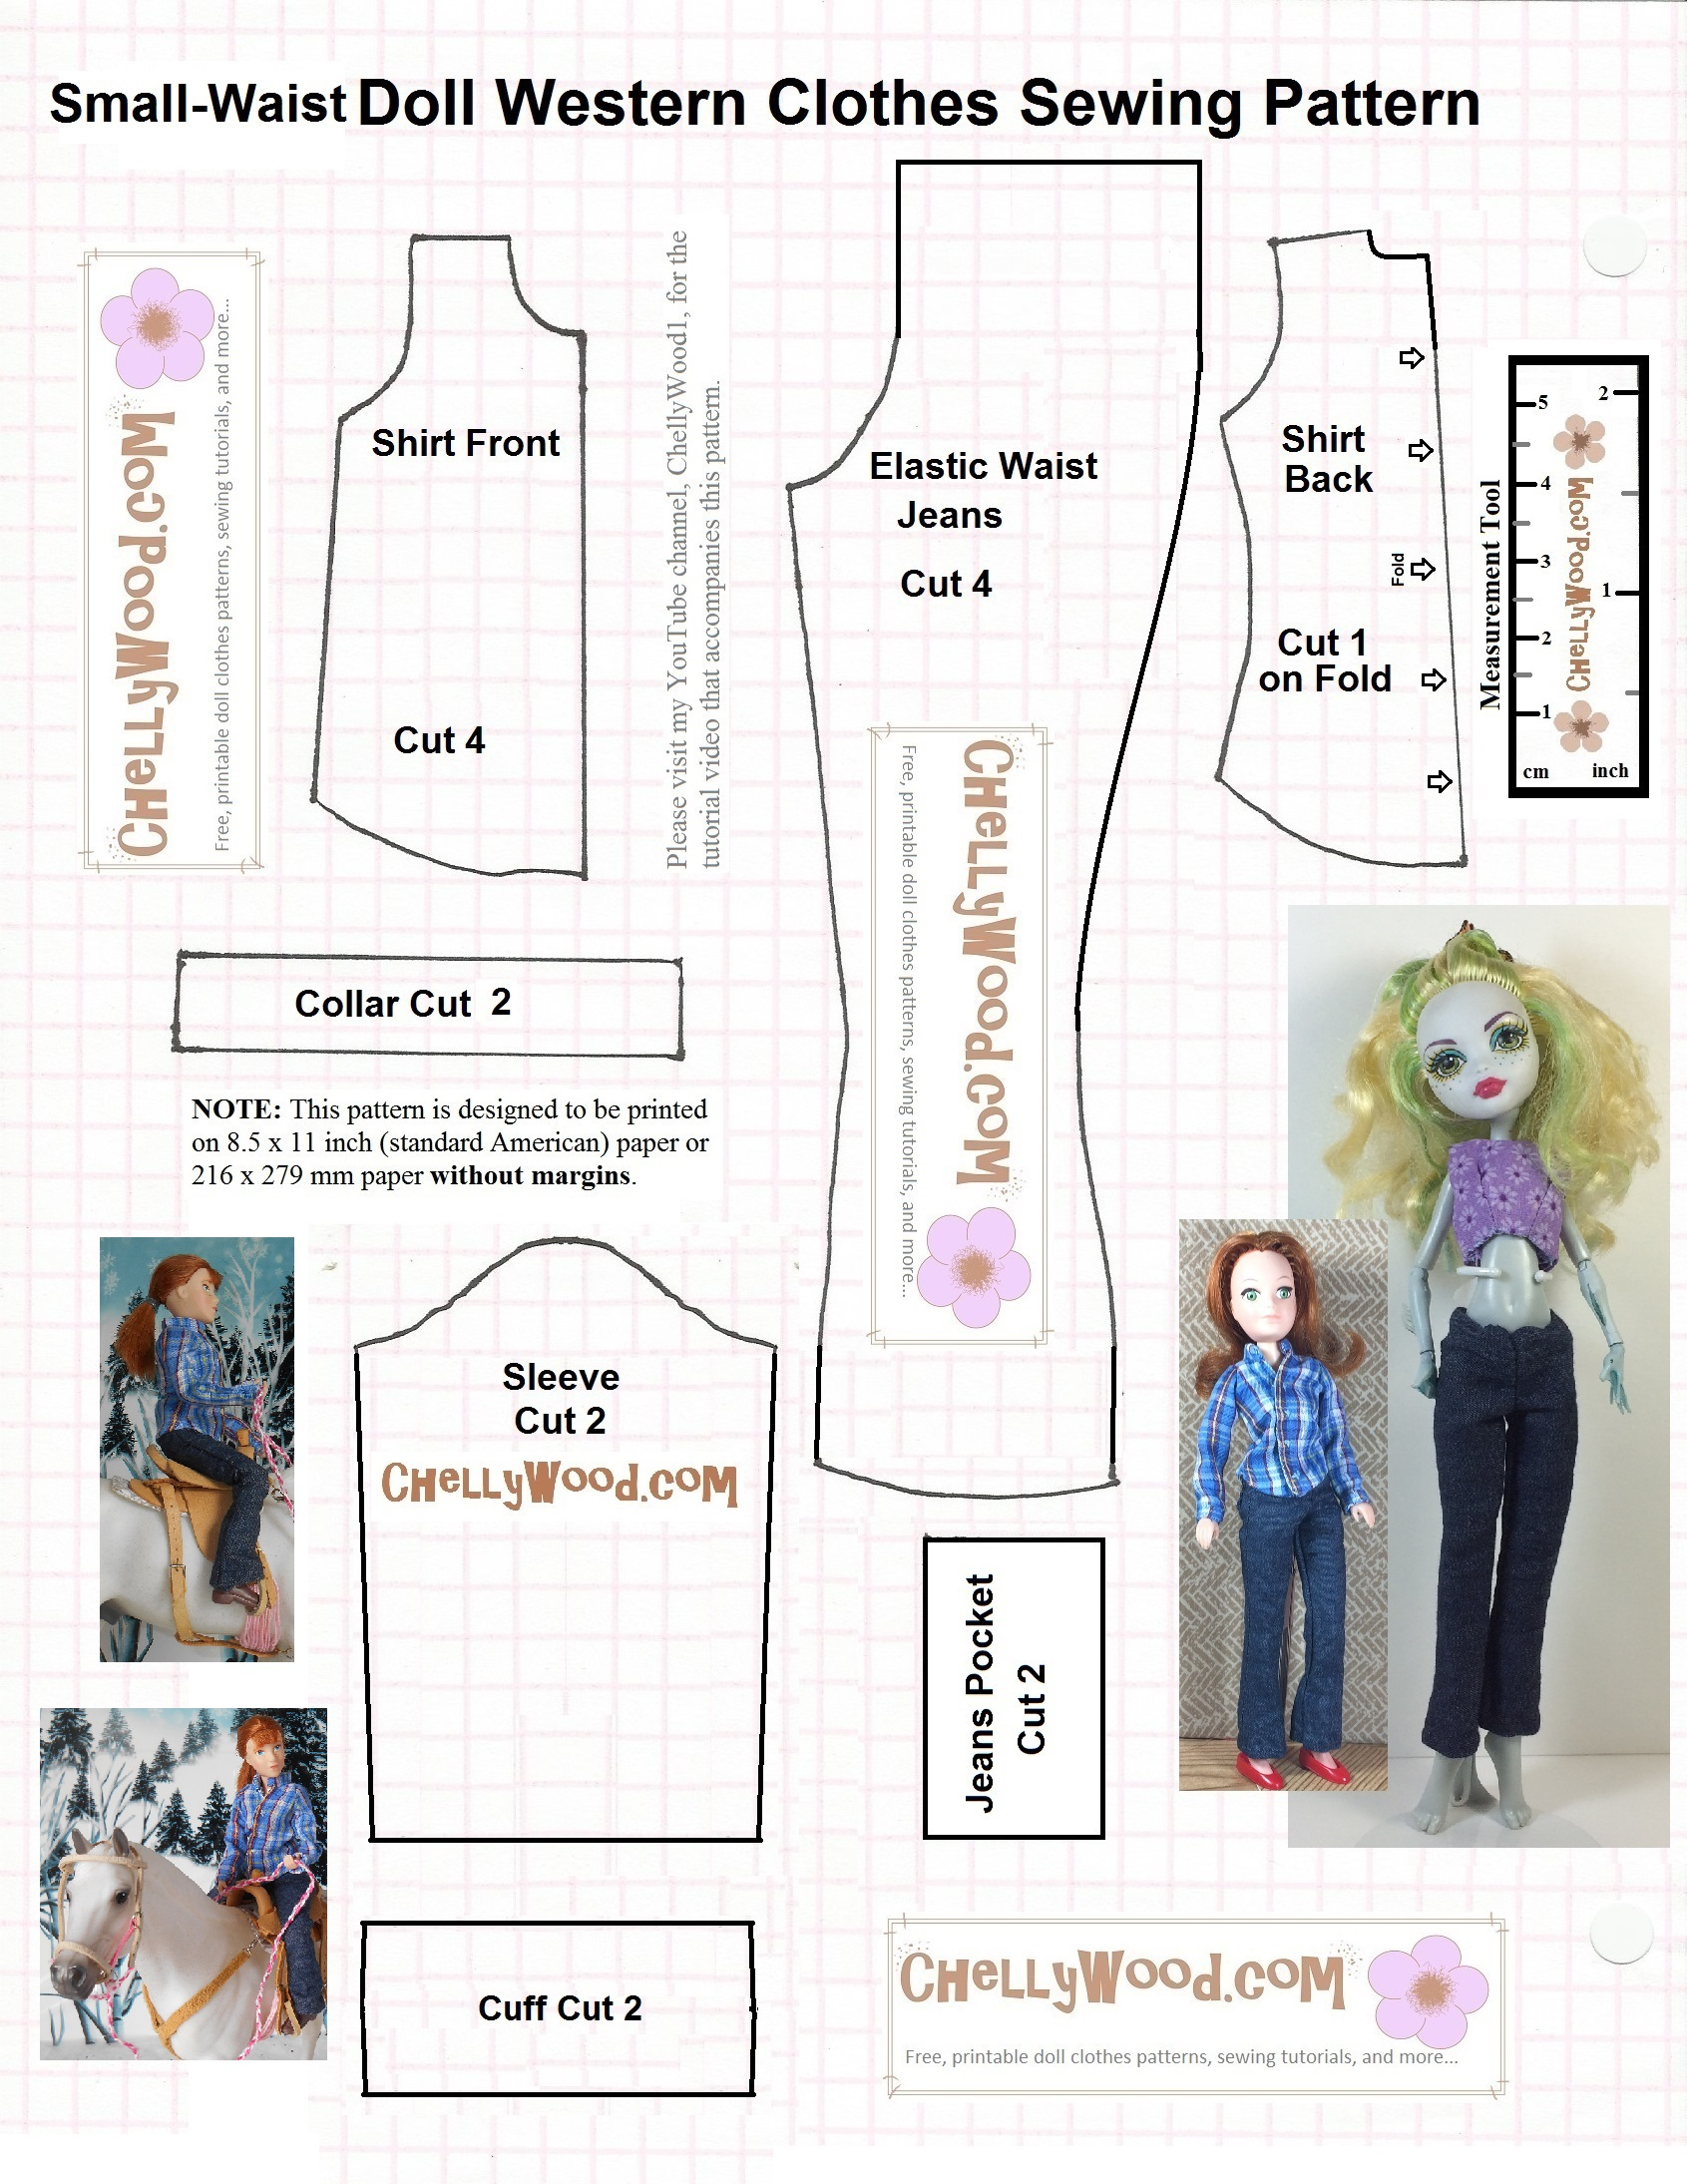 Monster high doll clothes sewing patterns are free chellywood but this is the pattern jeuxipadfo Gallery